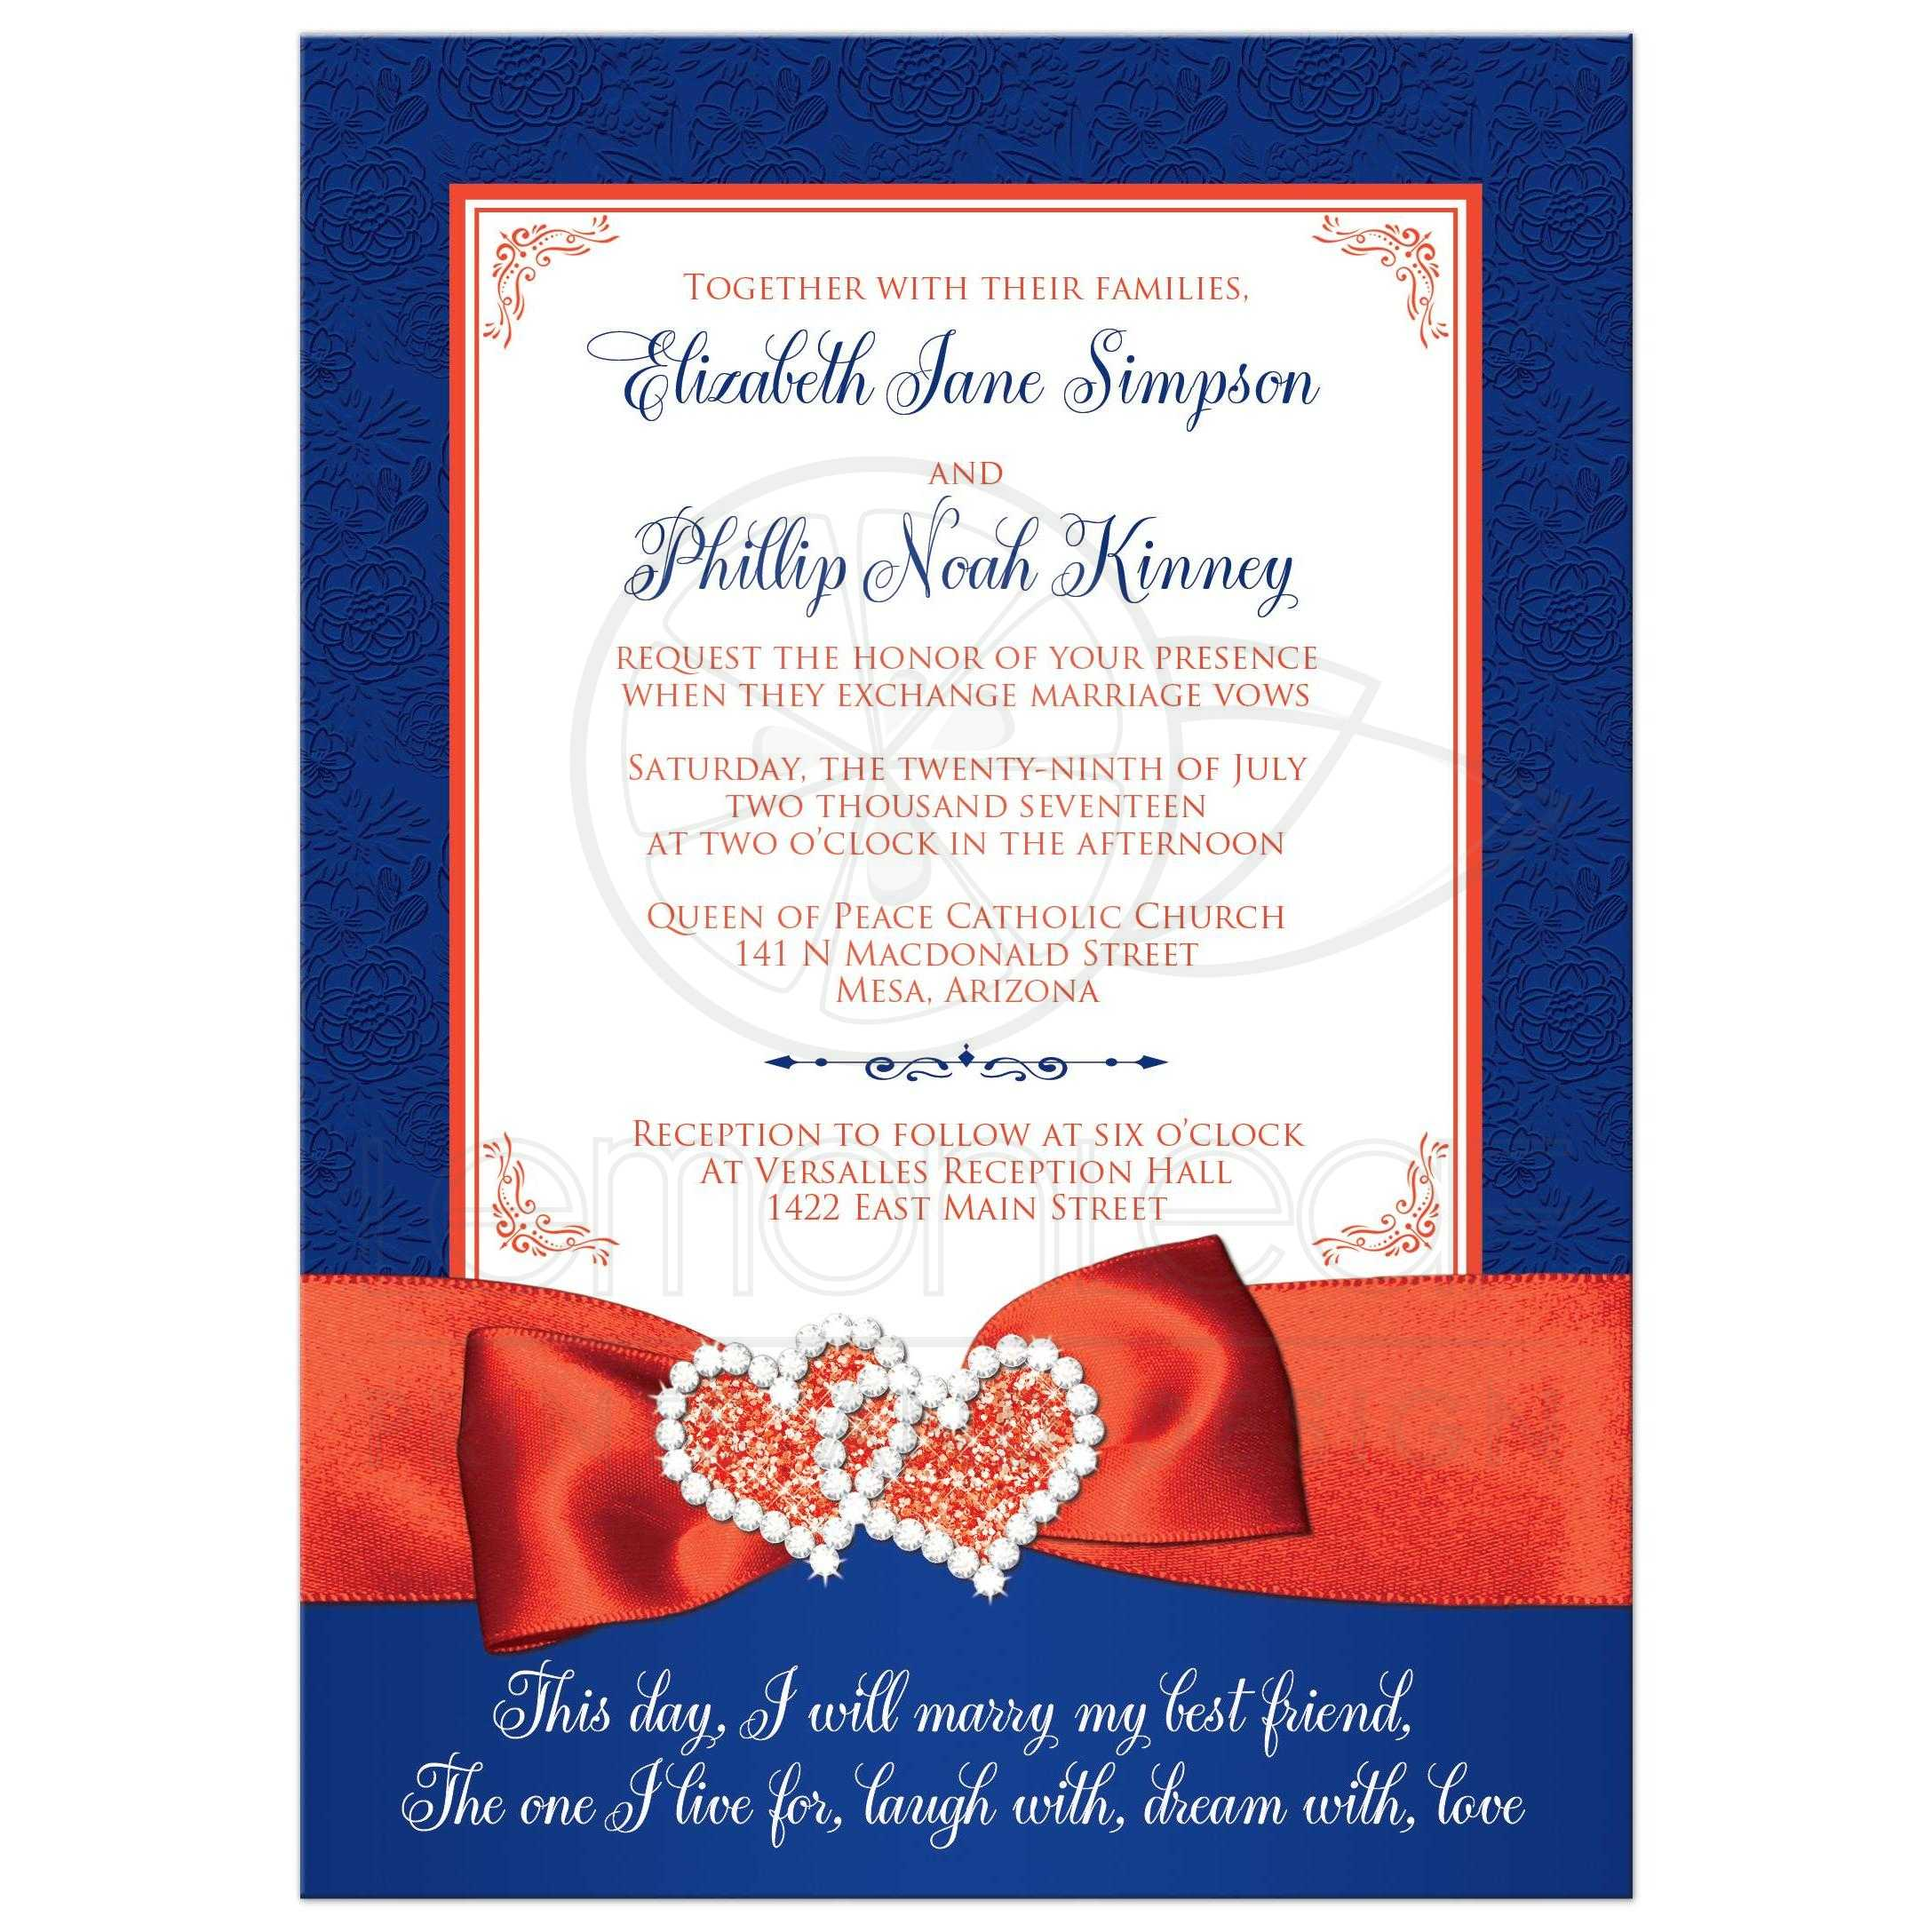 Wedding Invitation - PHOTO Optional | Royal Blue, White, Orange ...